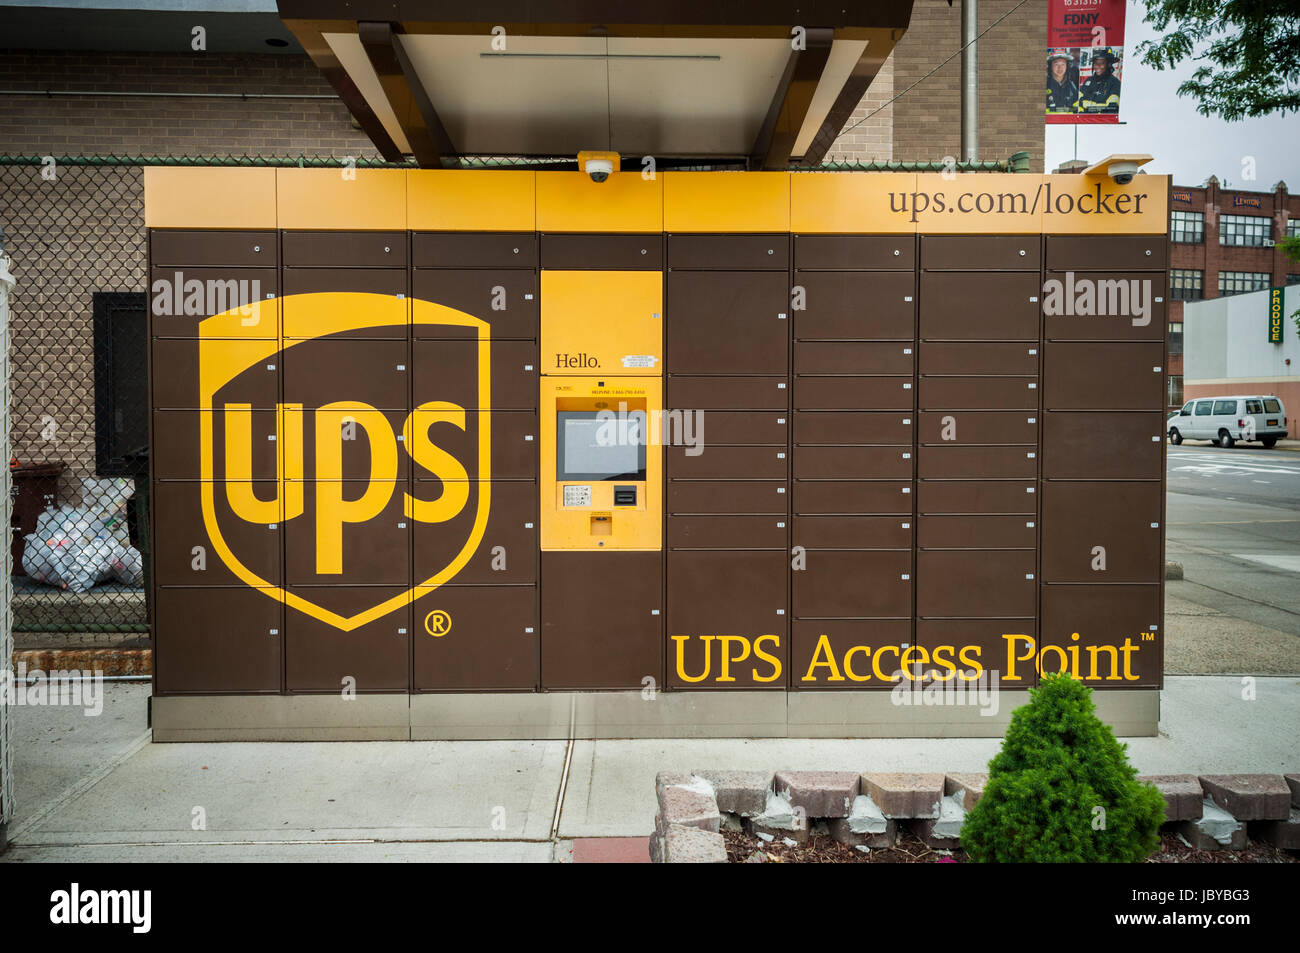 a ups access point pick-up station in outside of a gas station in